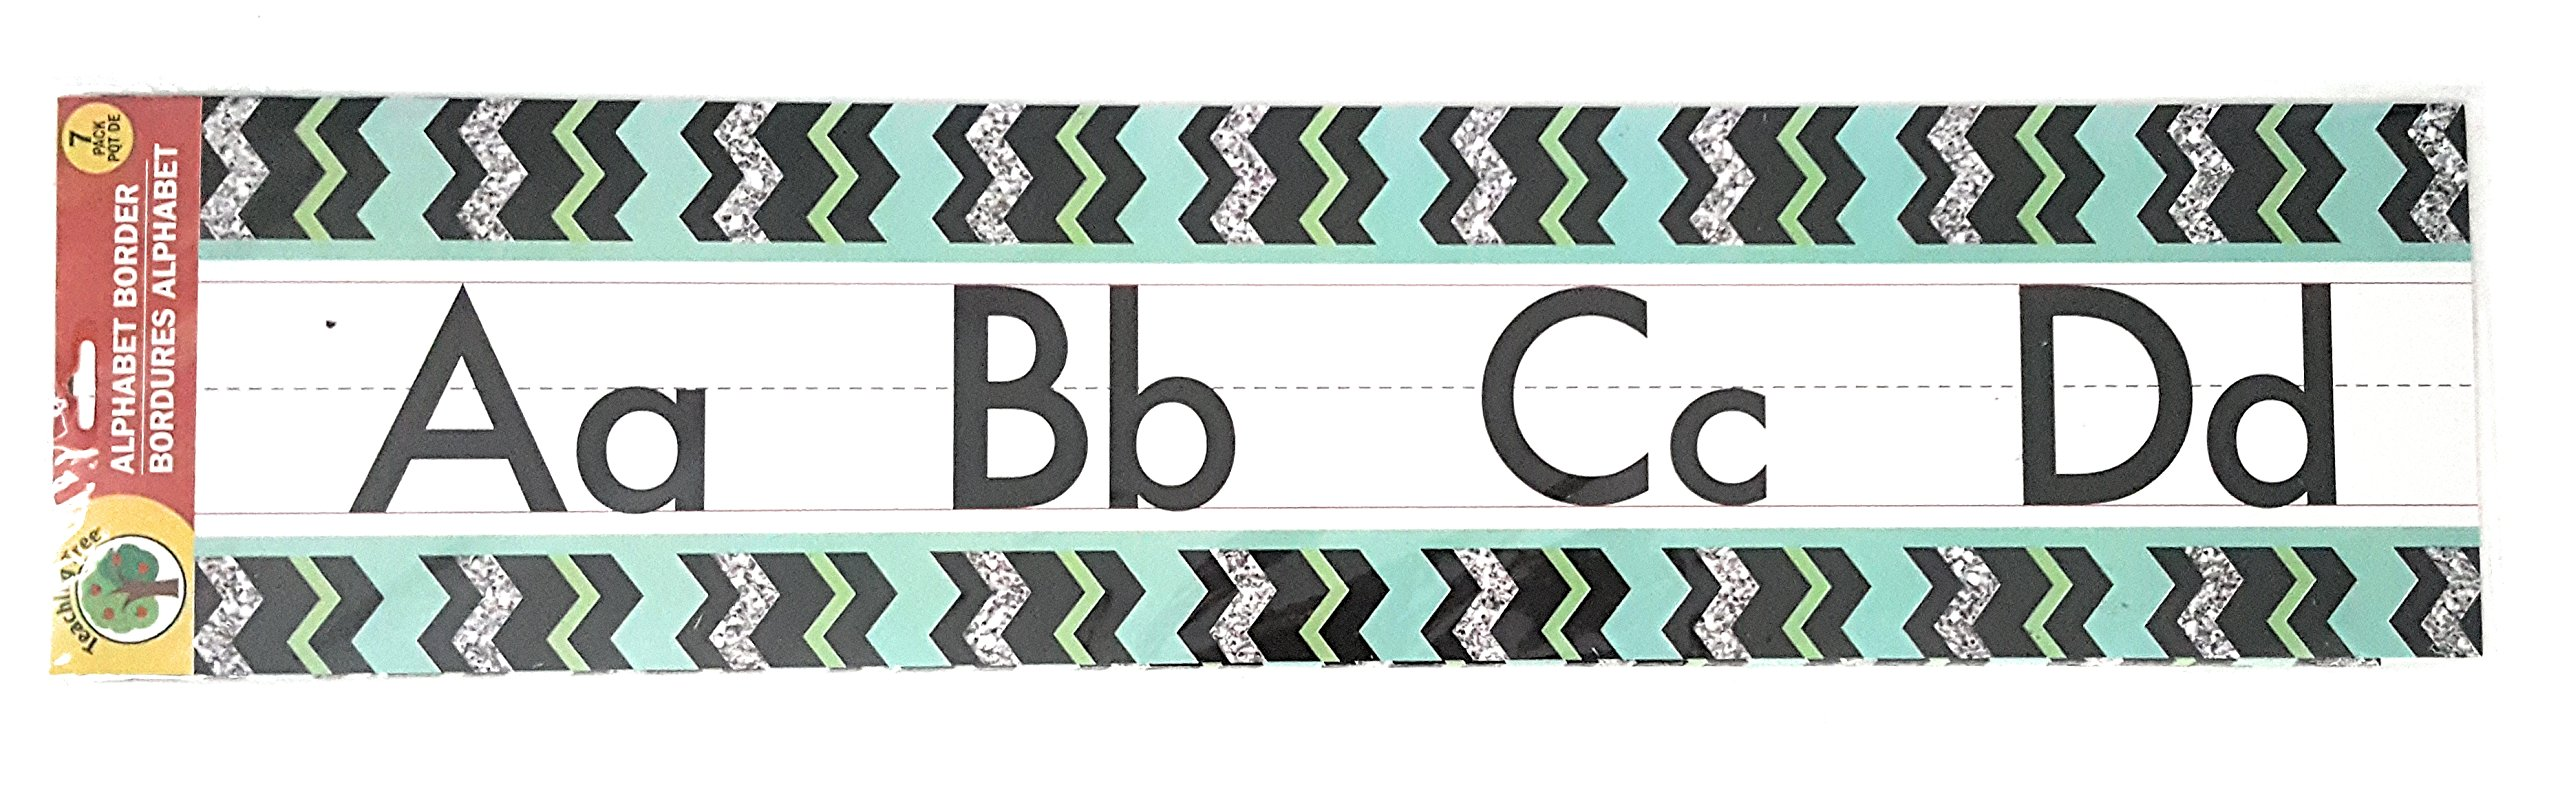 Teaching Tree Manuscript Alphabet Bulletin Back to School Board Creative Strips School Office Resources Scholastic Teacher Teacher's Bulletin Trim Wall Border Decal Classroom Decoration Black Zigzag